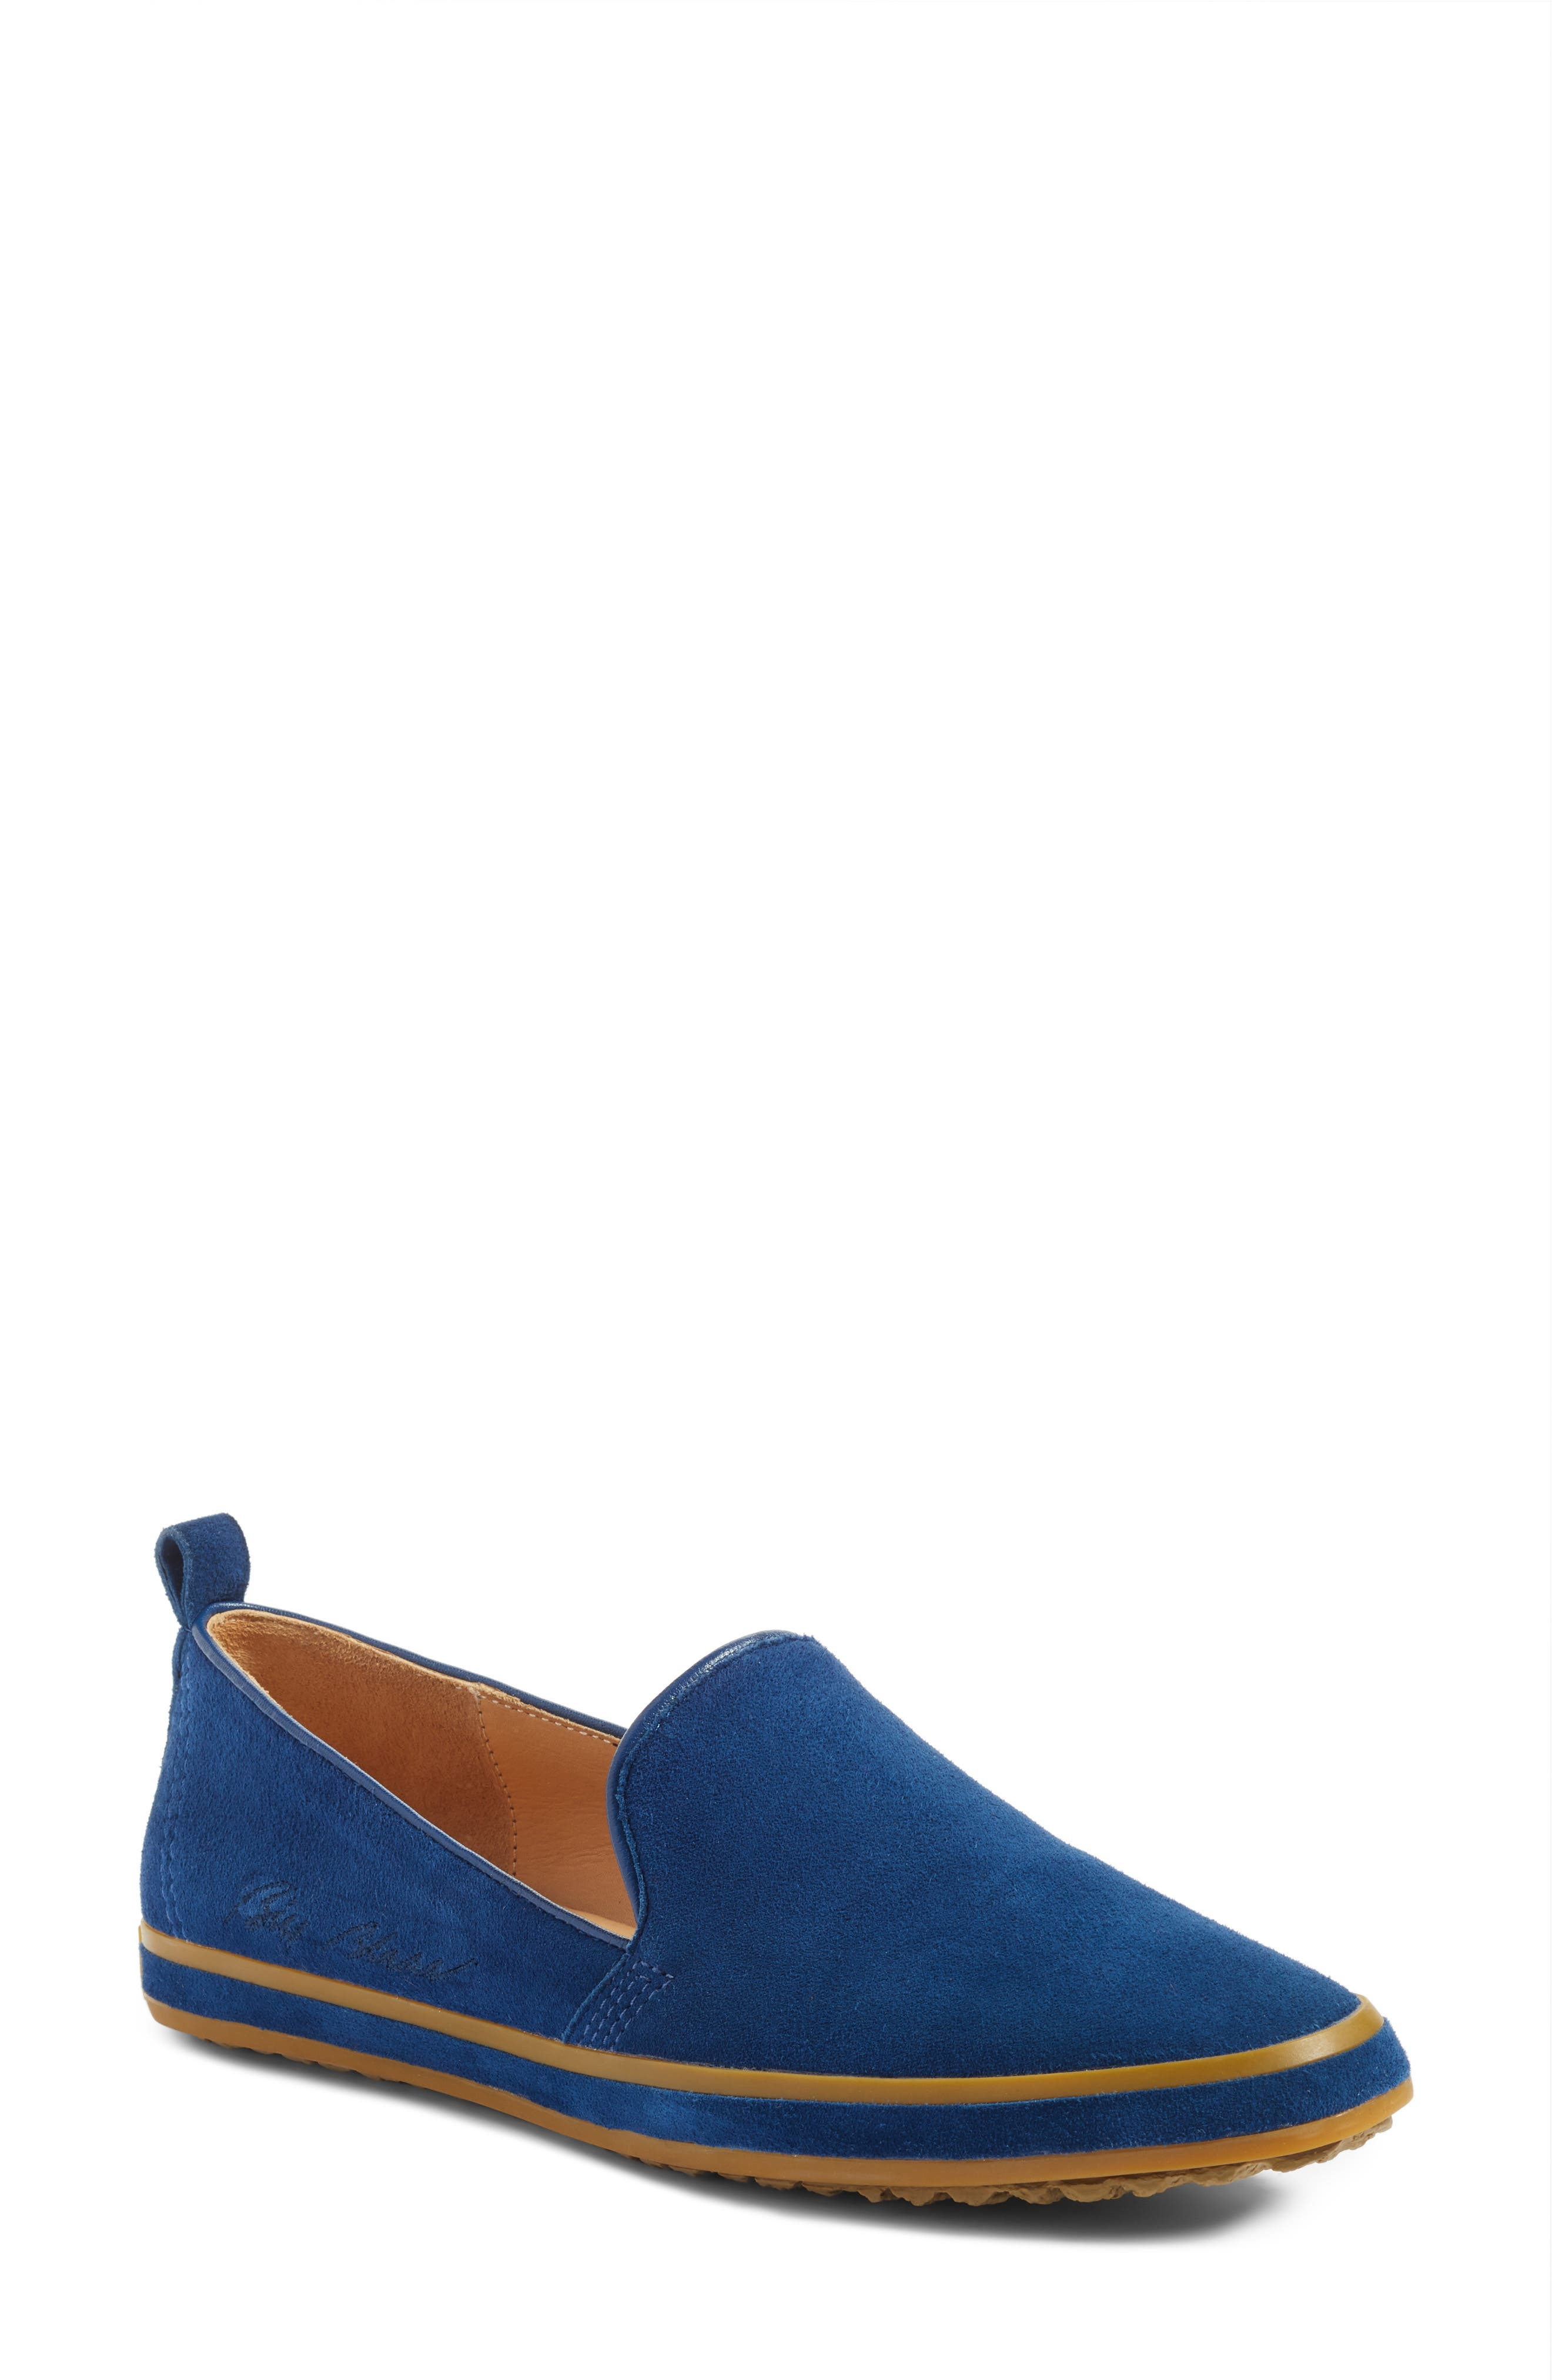 Sutton Slip-On Loafer,                             Main thumbnail 1, color,                             411